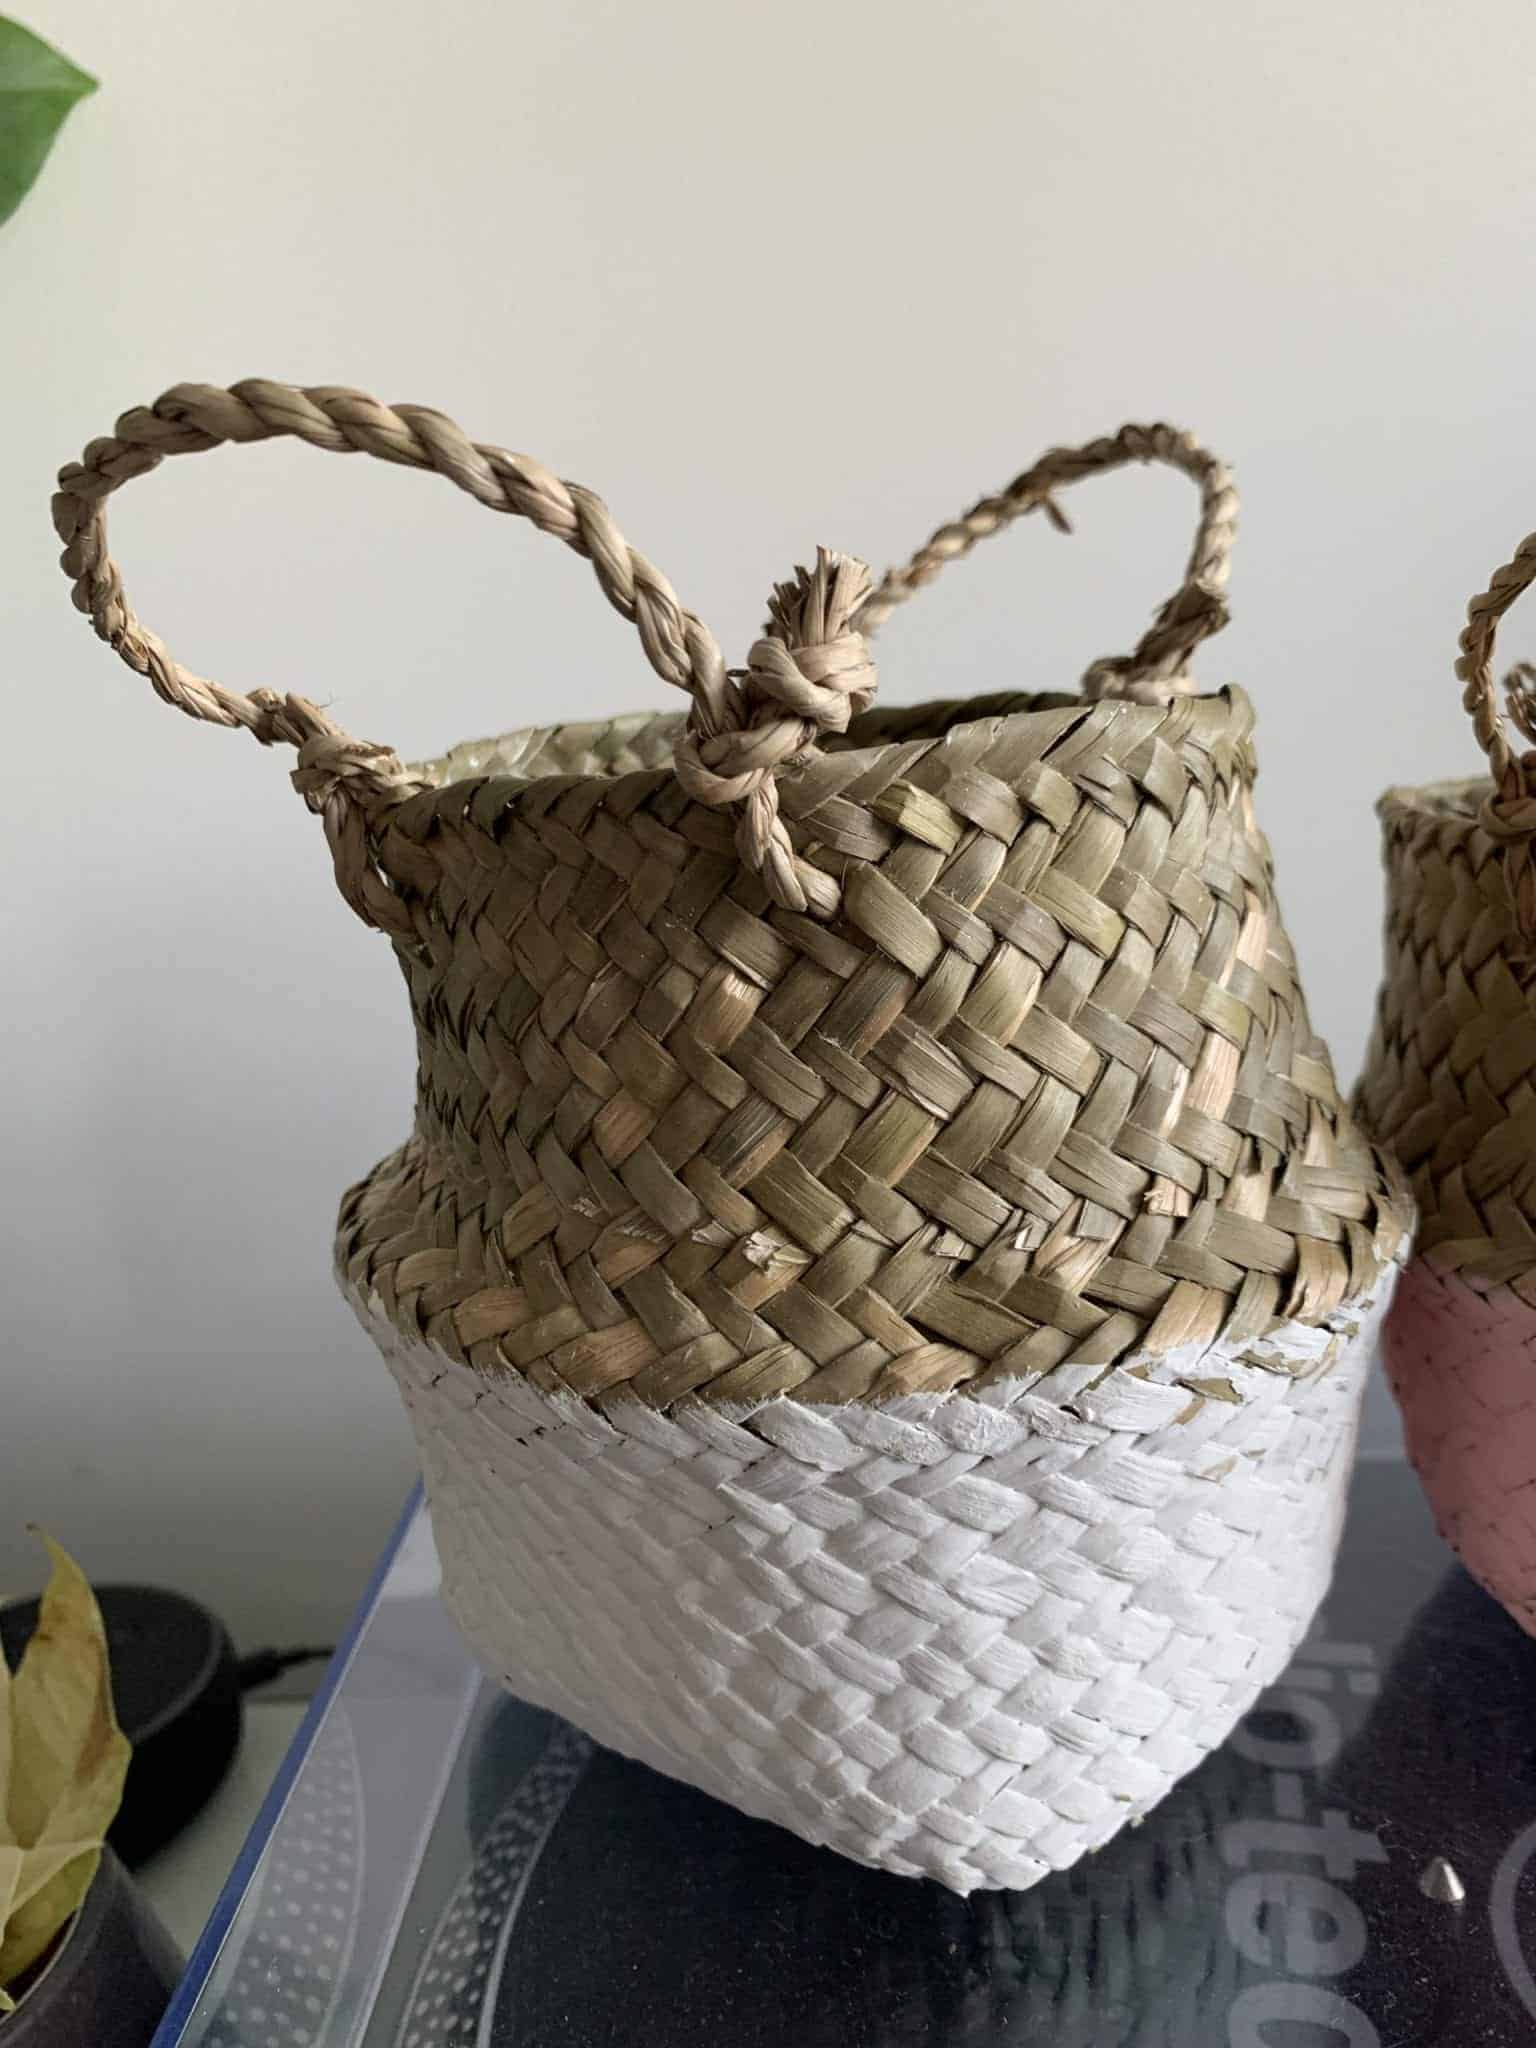 Wicker basket planter for 7-9cm pots | Available in choice of colours - White